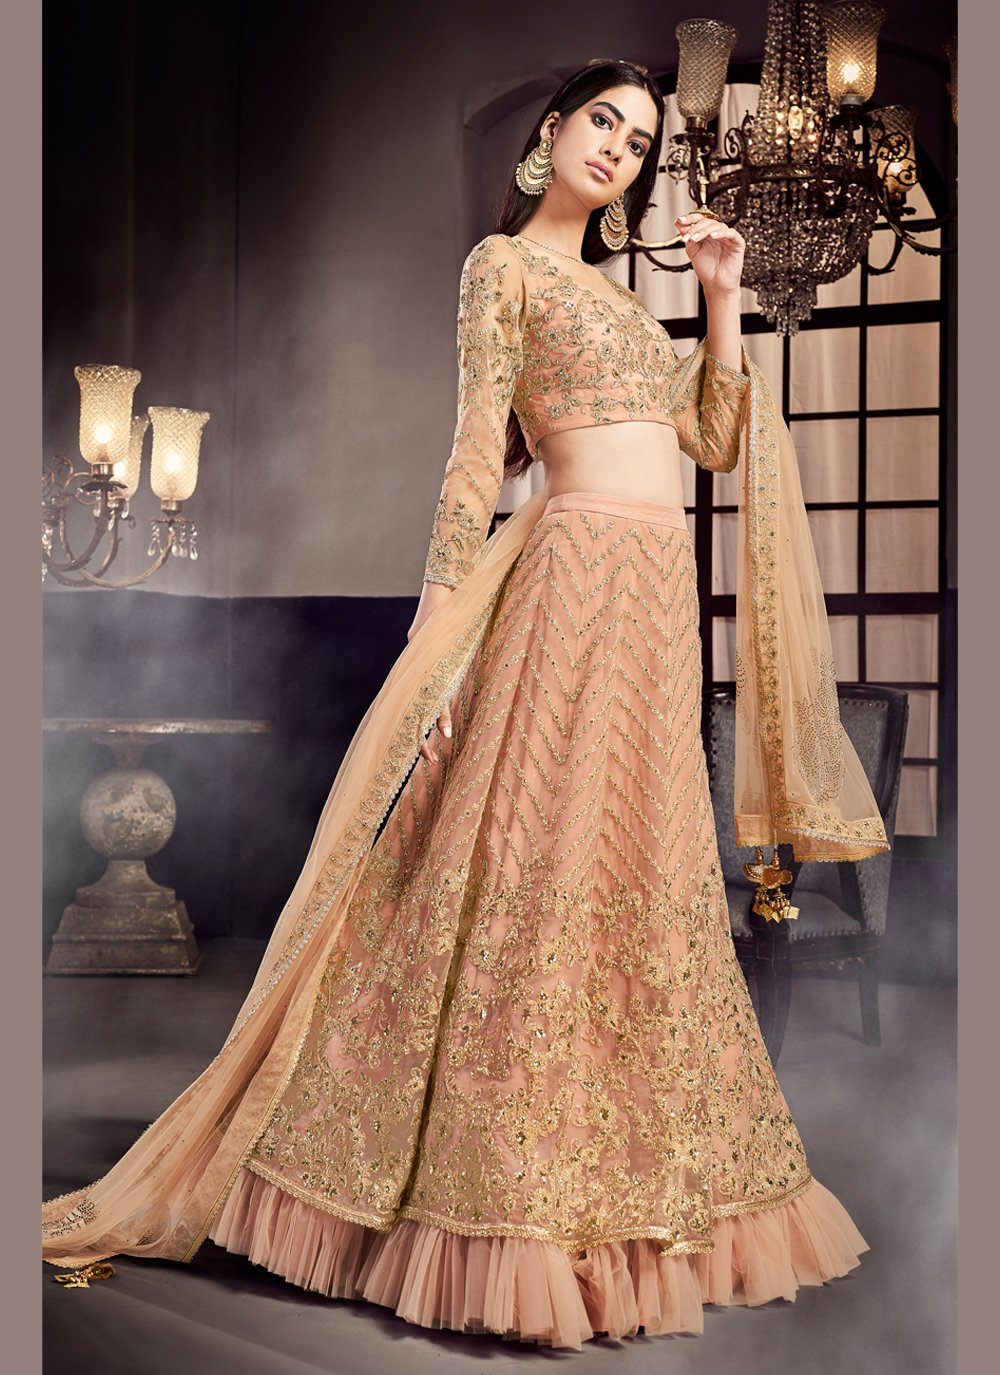 Peach Bridal Lehenga Choli